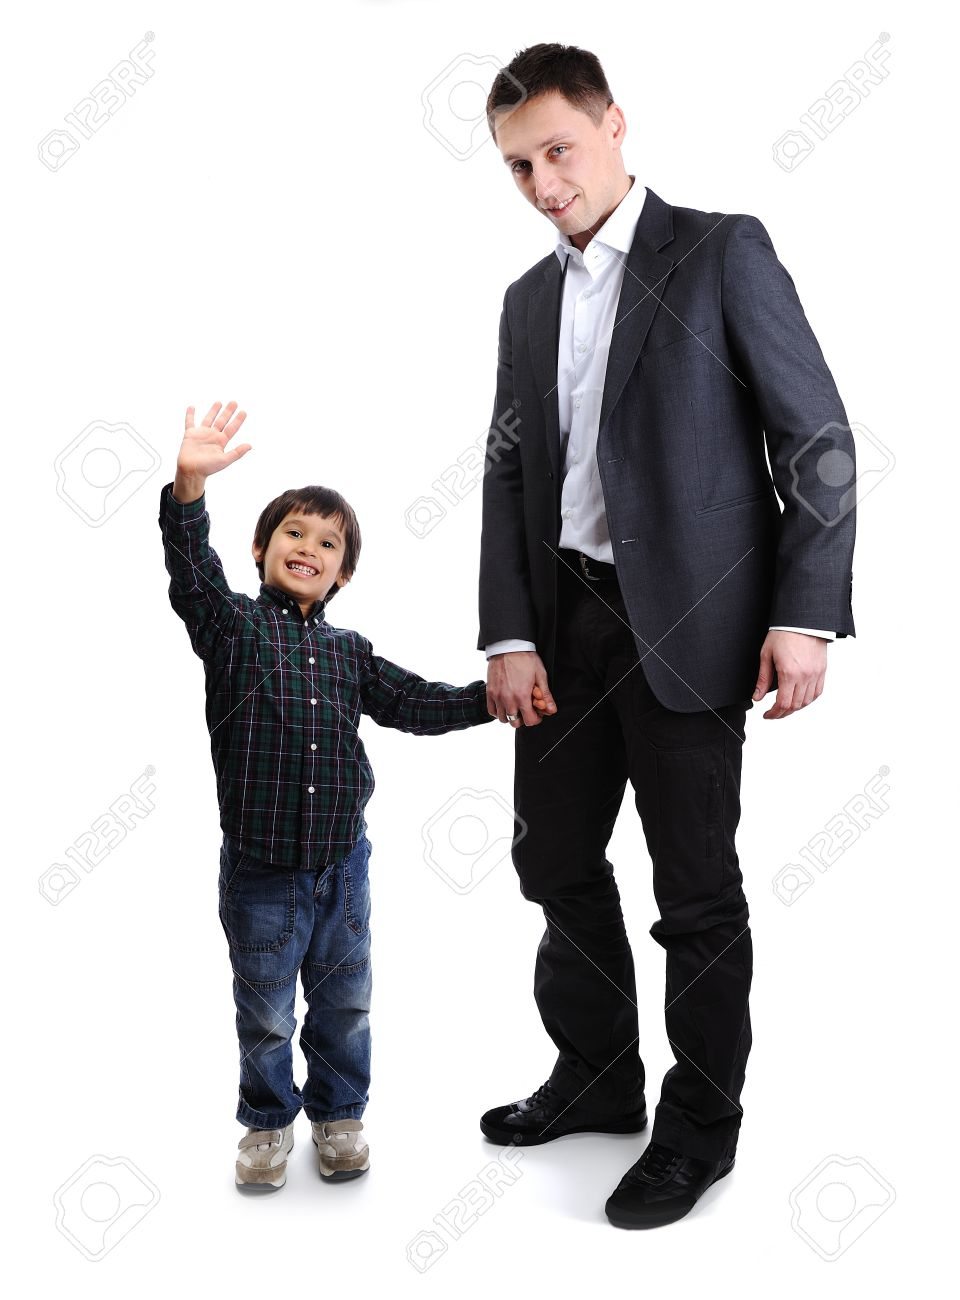 Son and father, child and adult standing, full body Stock Photo - 14580469